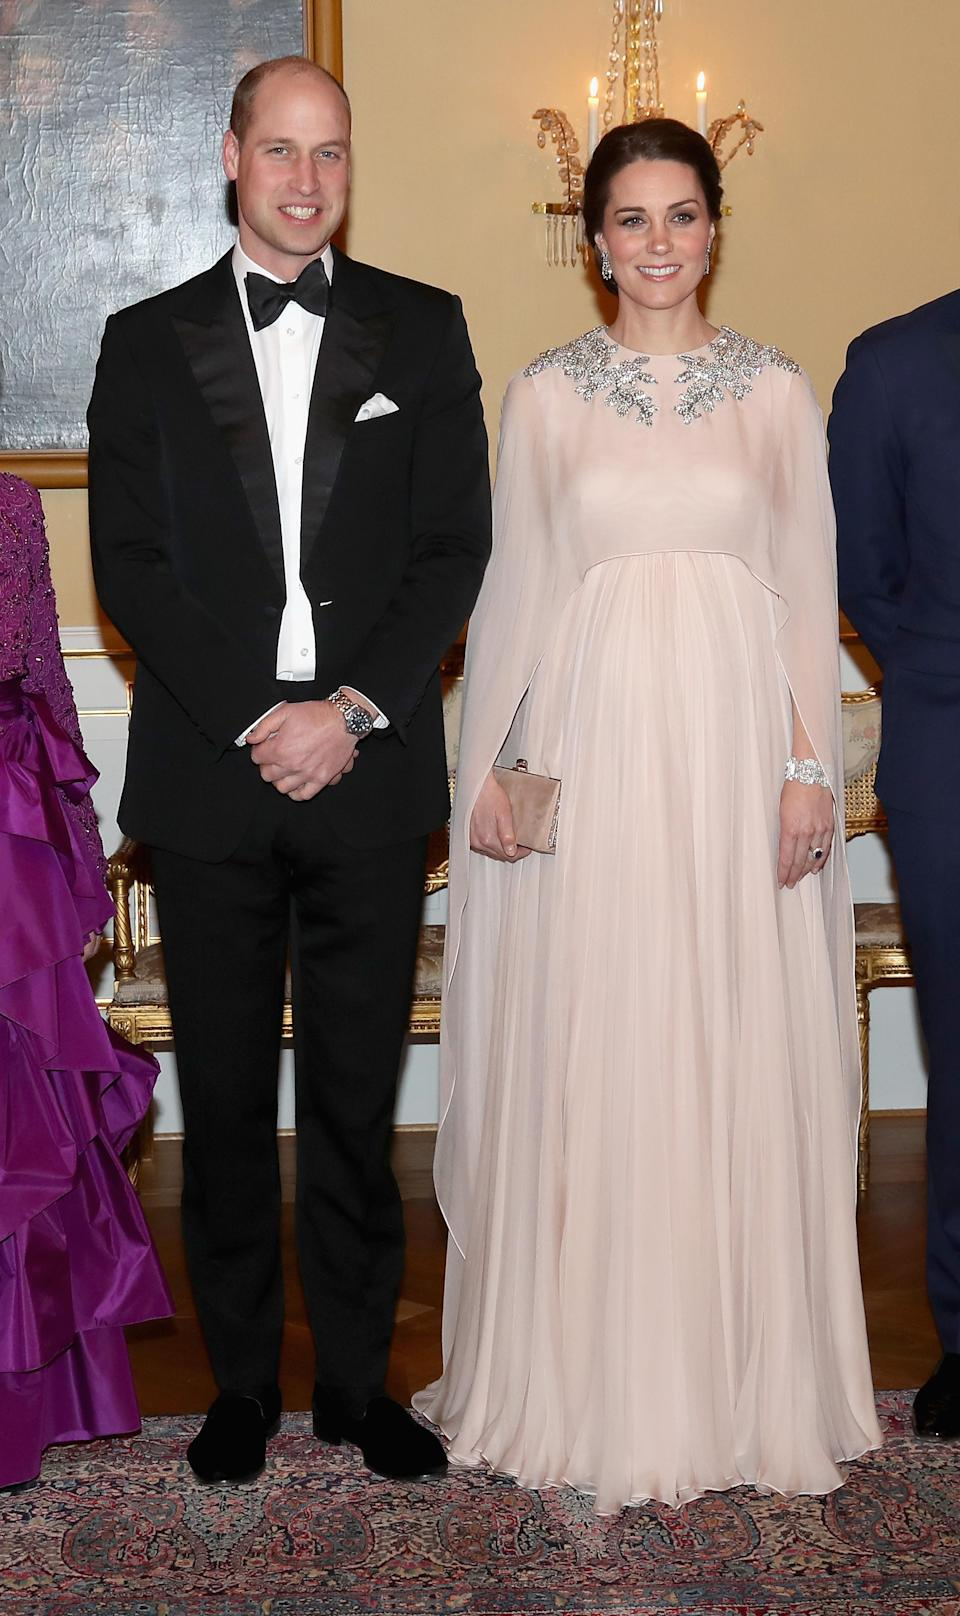 """<p>For a dinner at Stockholm's royal palace during the couple's Scandinavian tour, the Duchess of Cambridge wore a sheer Alexander McQueen cape dress. For an idea of price, a berry-hued version currently <a href=""""https://www.harrods.com/en-gb/alexander-mcqueen/embellished-silk-cape-gown-p000000000006016275?ranMID=36666&ranEAID=TnL5HPStwNw&ranSiteID=TnL5HPStwNw-SJkaa2WAUdbrhHUqL7cxJg&cid=ls_uk&utm_source=Affiliate&utm_medium=RakutenAffiliate&utm_campaign=TnL5HPStwNw&utm_content=10&siteID=TnL5HPStwNw-SJkaa2WAUdbrhHUqL7cxJg"""" rel=""""nofollow noopener"""" target=""""_blank"""" data-ylk=""""slk:retails"""" class=""""link rapid-noclick-resp"""">retails</a> at £7,499. She finished the evening look with a £1,142.85 Jimmy Choo clutch. <em>[Photo: Getty]</em> </p>"""